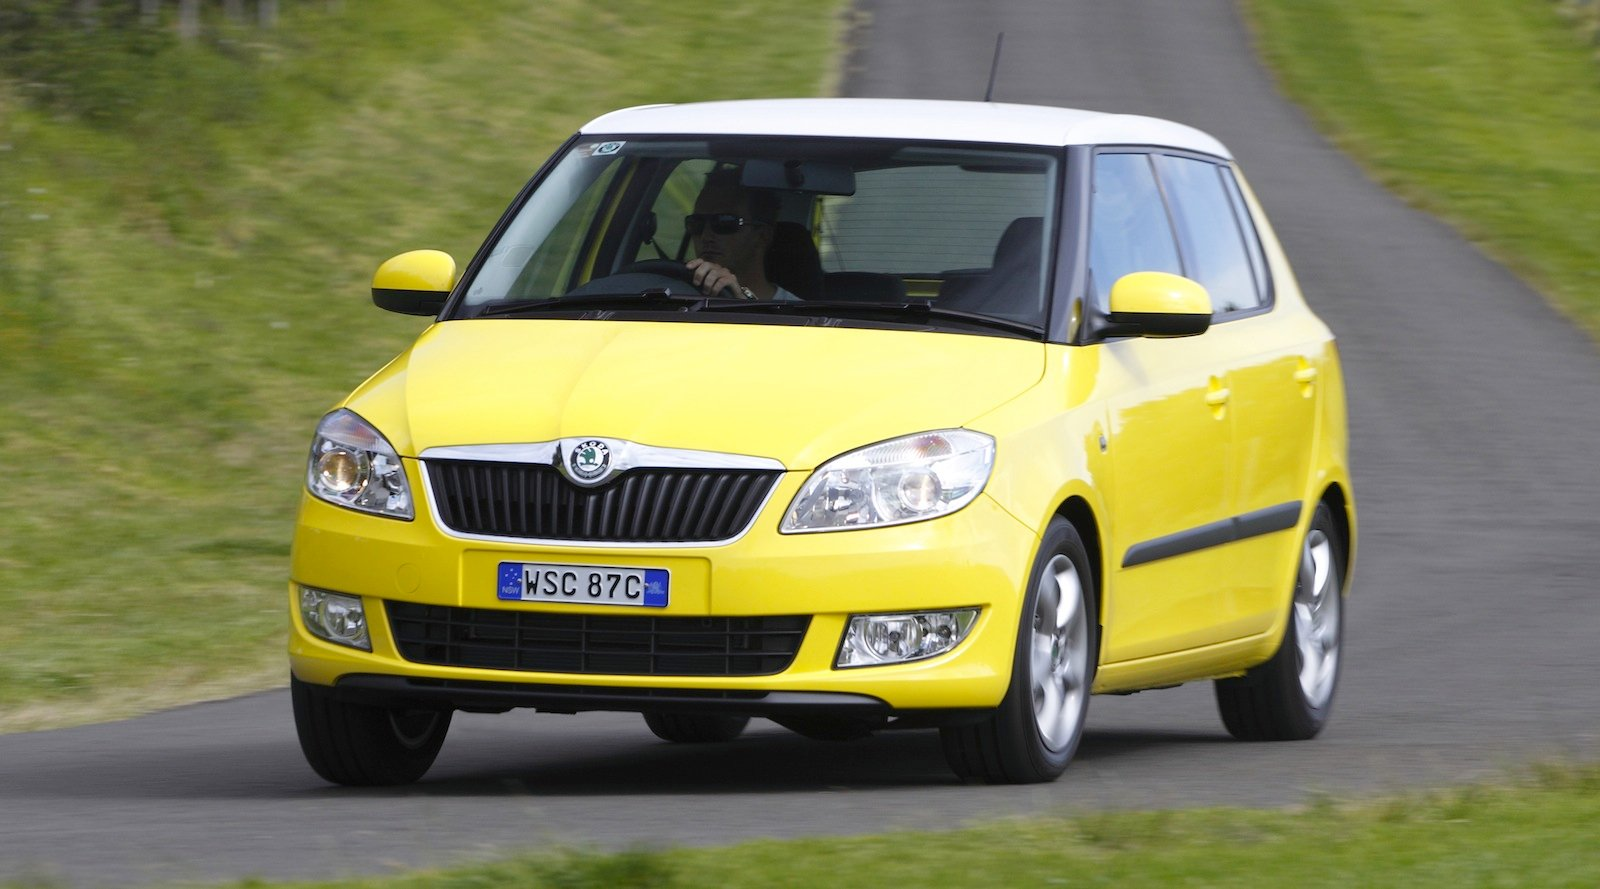 2014 skoda fabia price cut to 15 990 photos 1 of 2. Black Bedroom Furniture Sets. Home Design Ideas